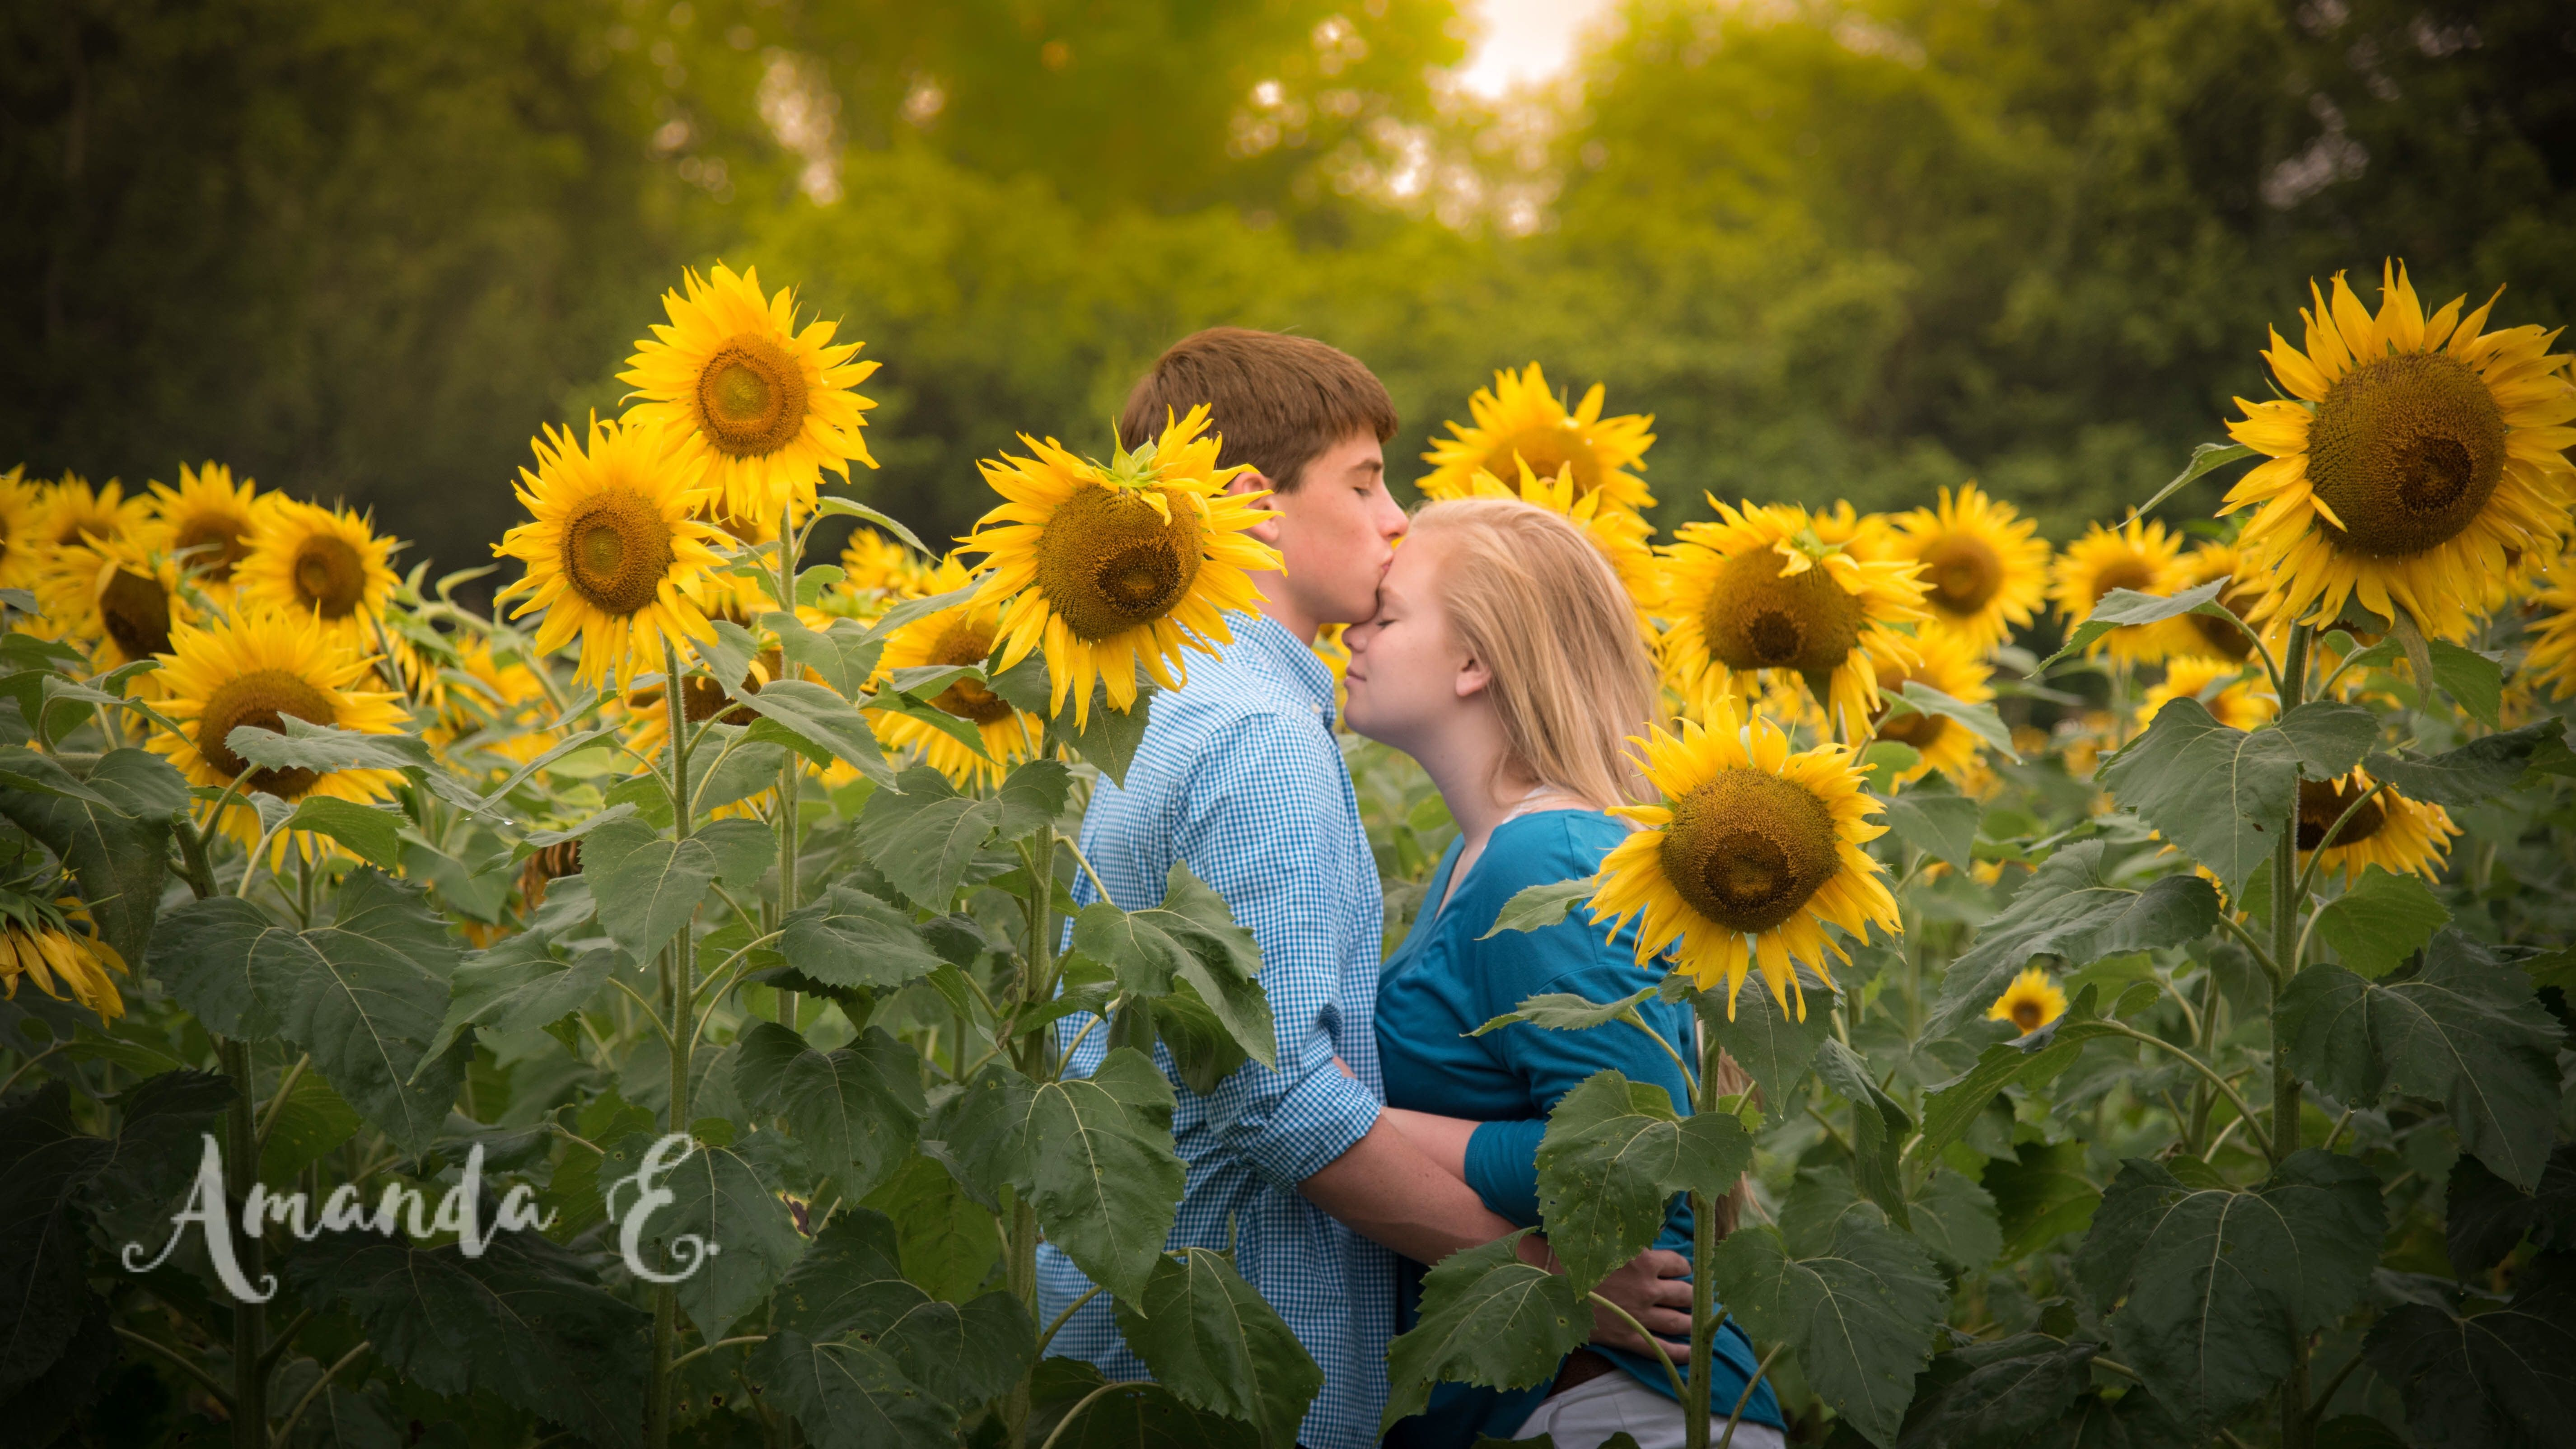 Sunflower Field Photography Engagement Photo Shoot In Sunflower